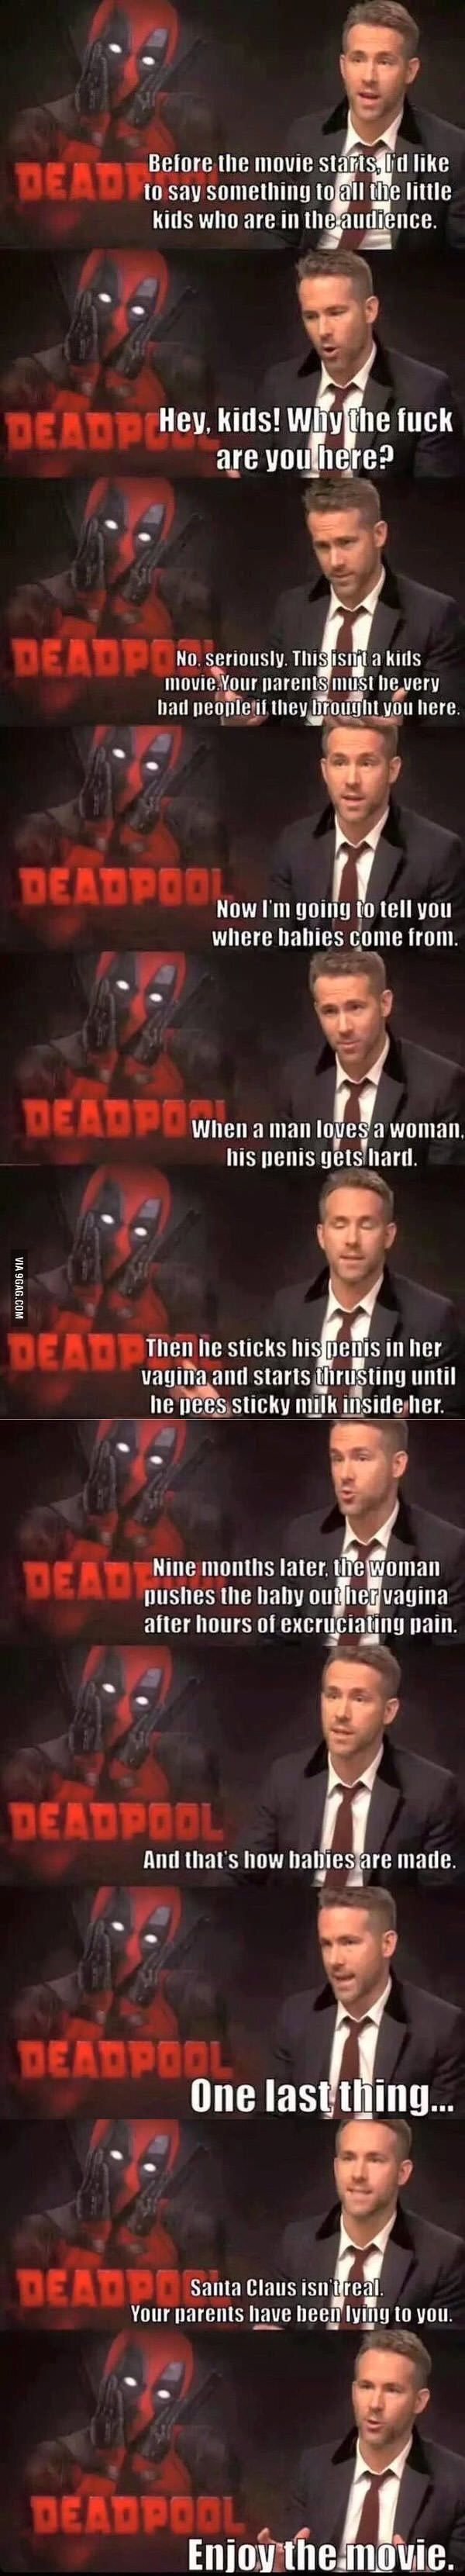 WHY DIDN'T THEY DO THIS? There were so many little kids in the audience when I went to see Deadpool.